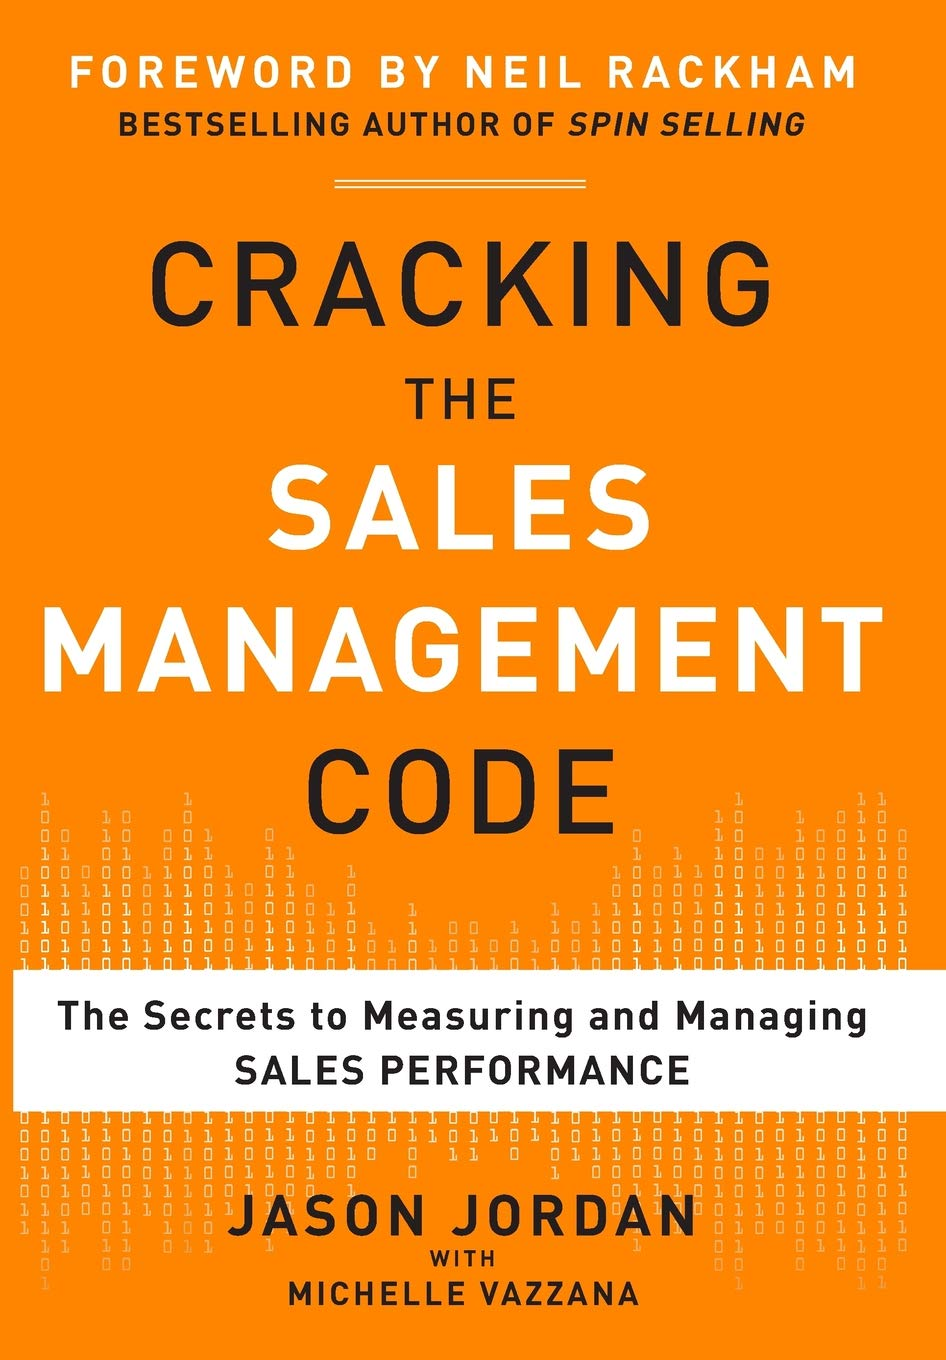 Cracking the Sales Management Code book